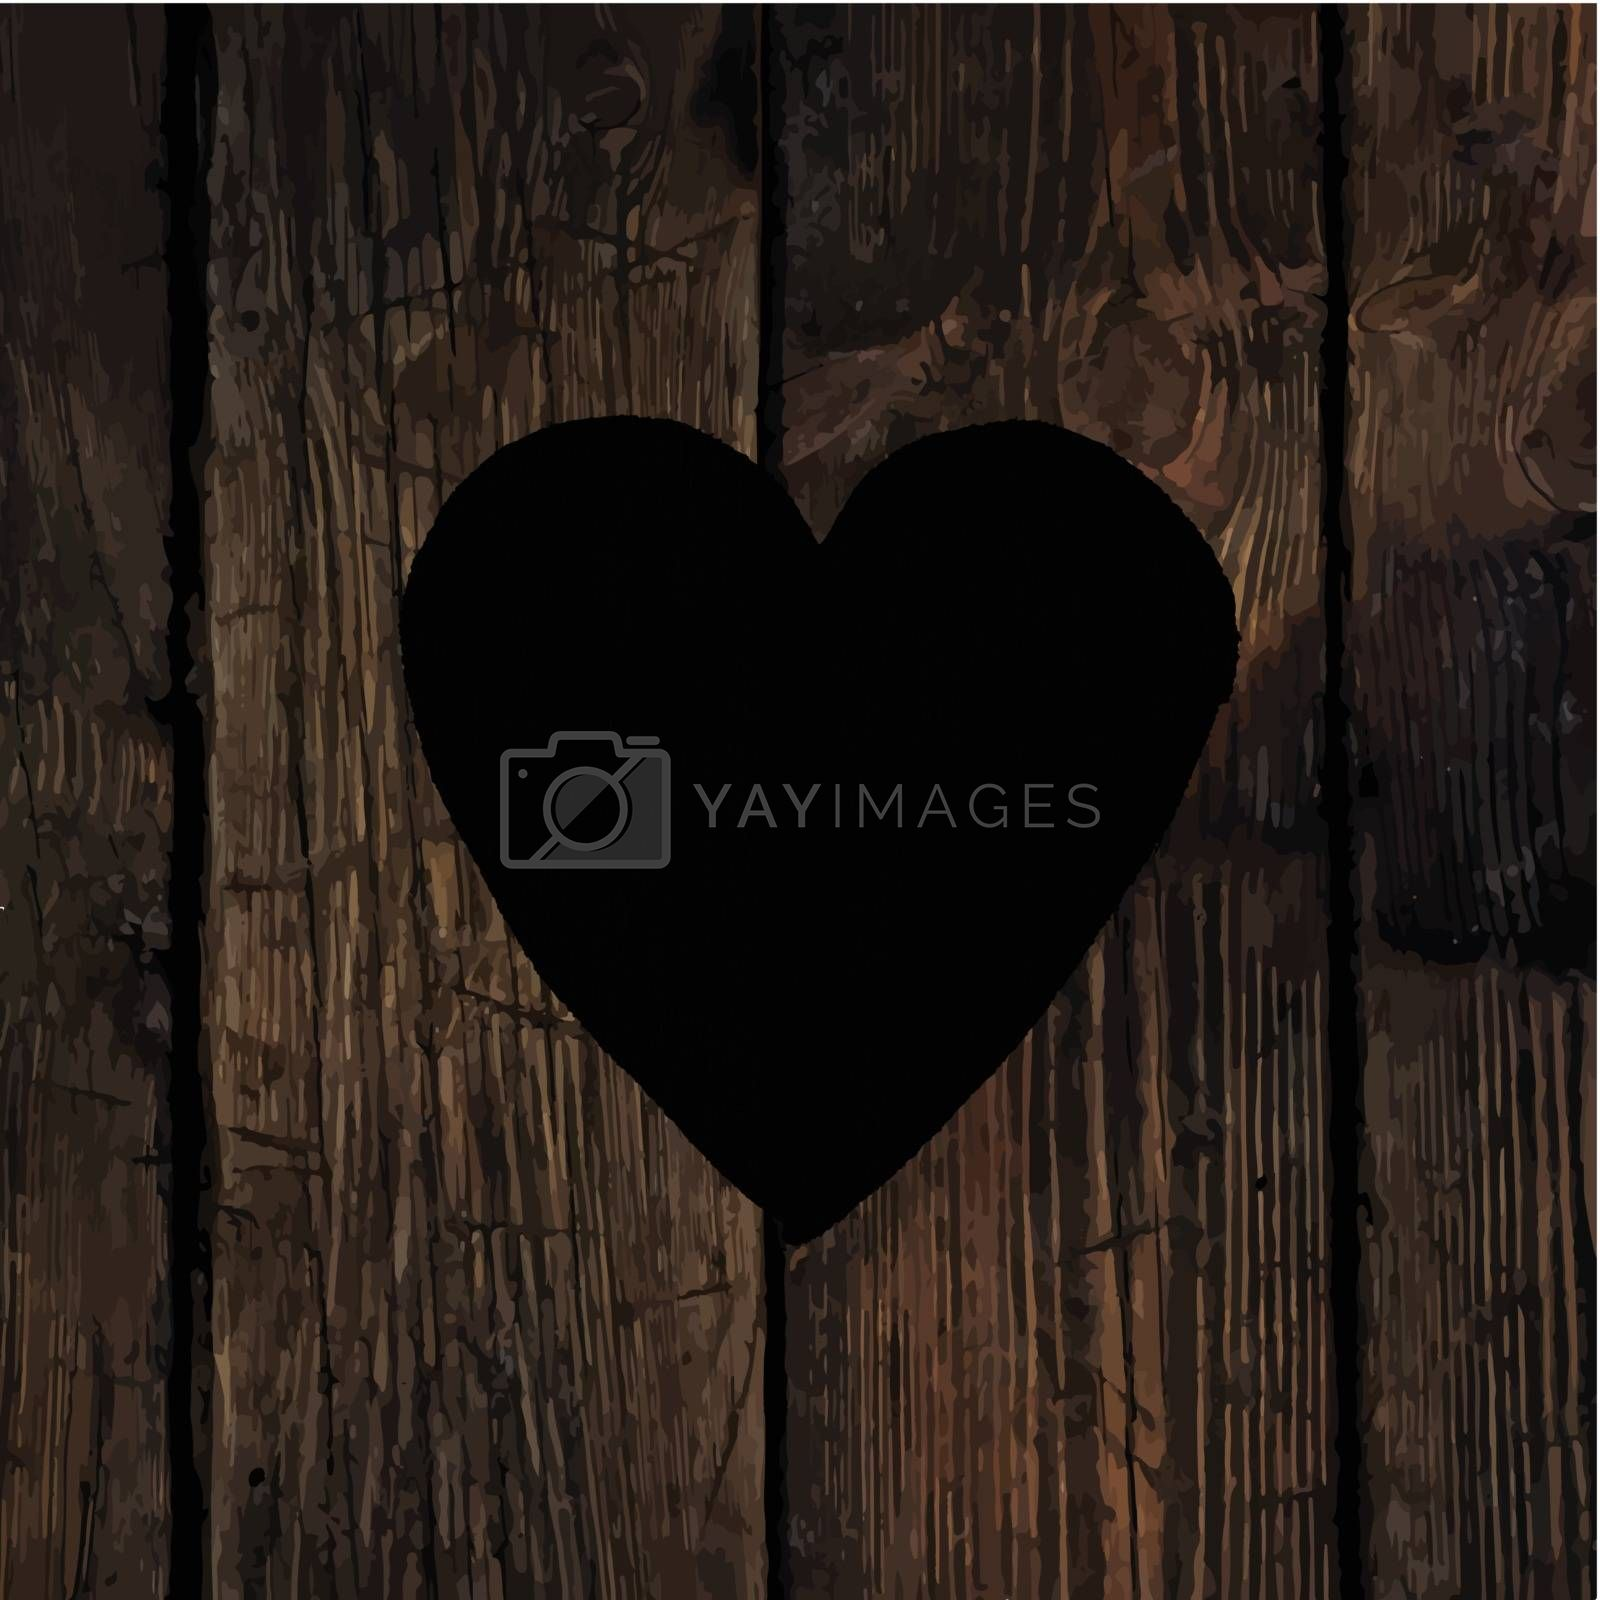 Royalty free image of Heart symbol on wooden texture. by pashabo